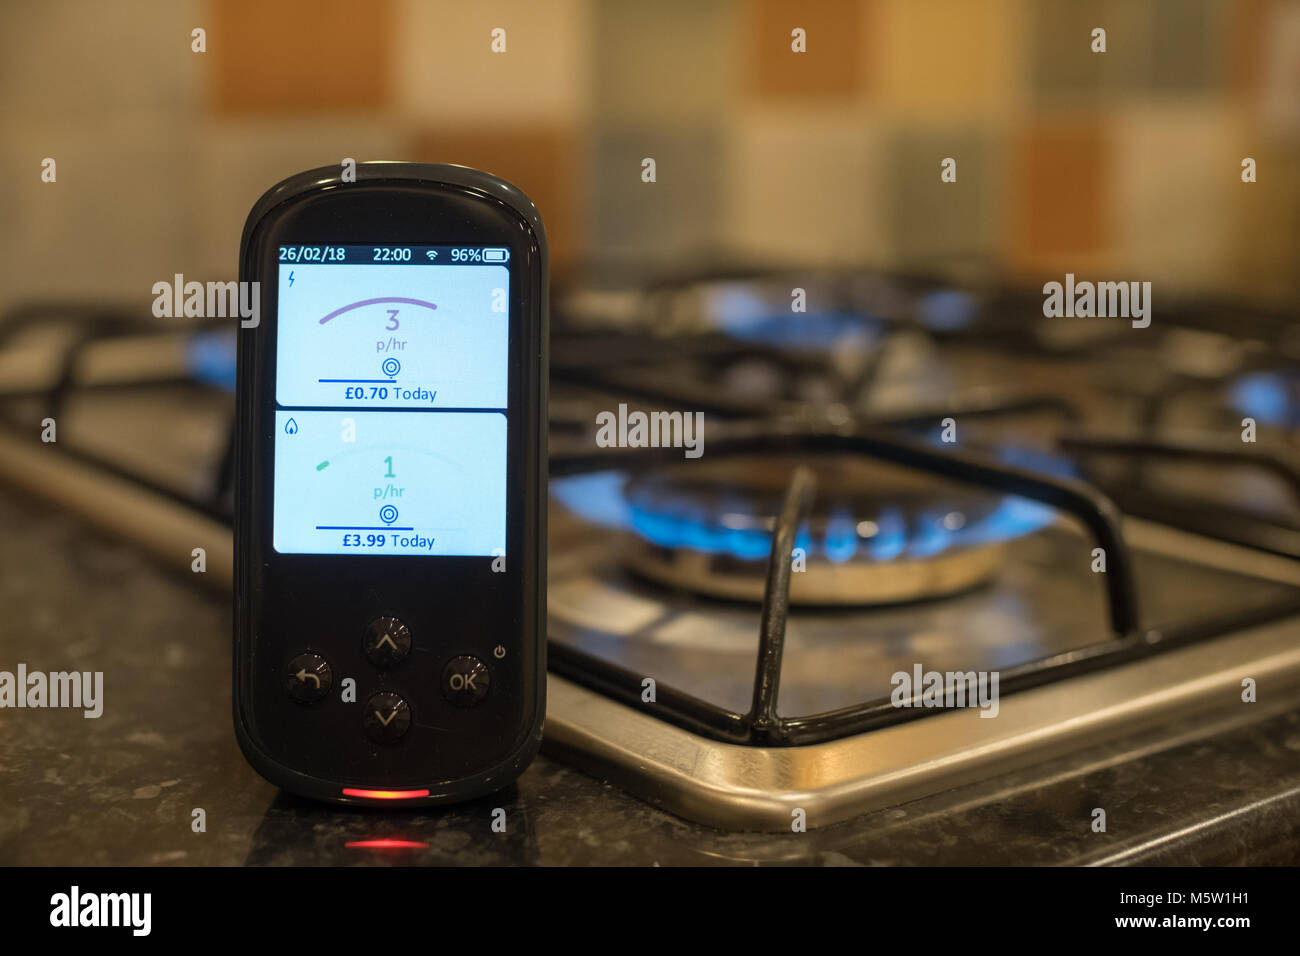 Smart Metering Showing Live Data - Stock Image